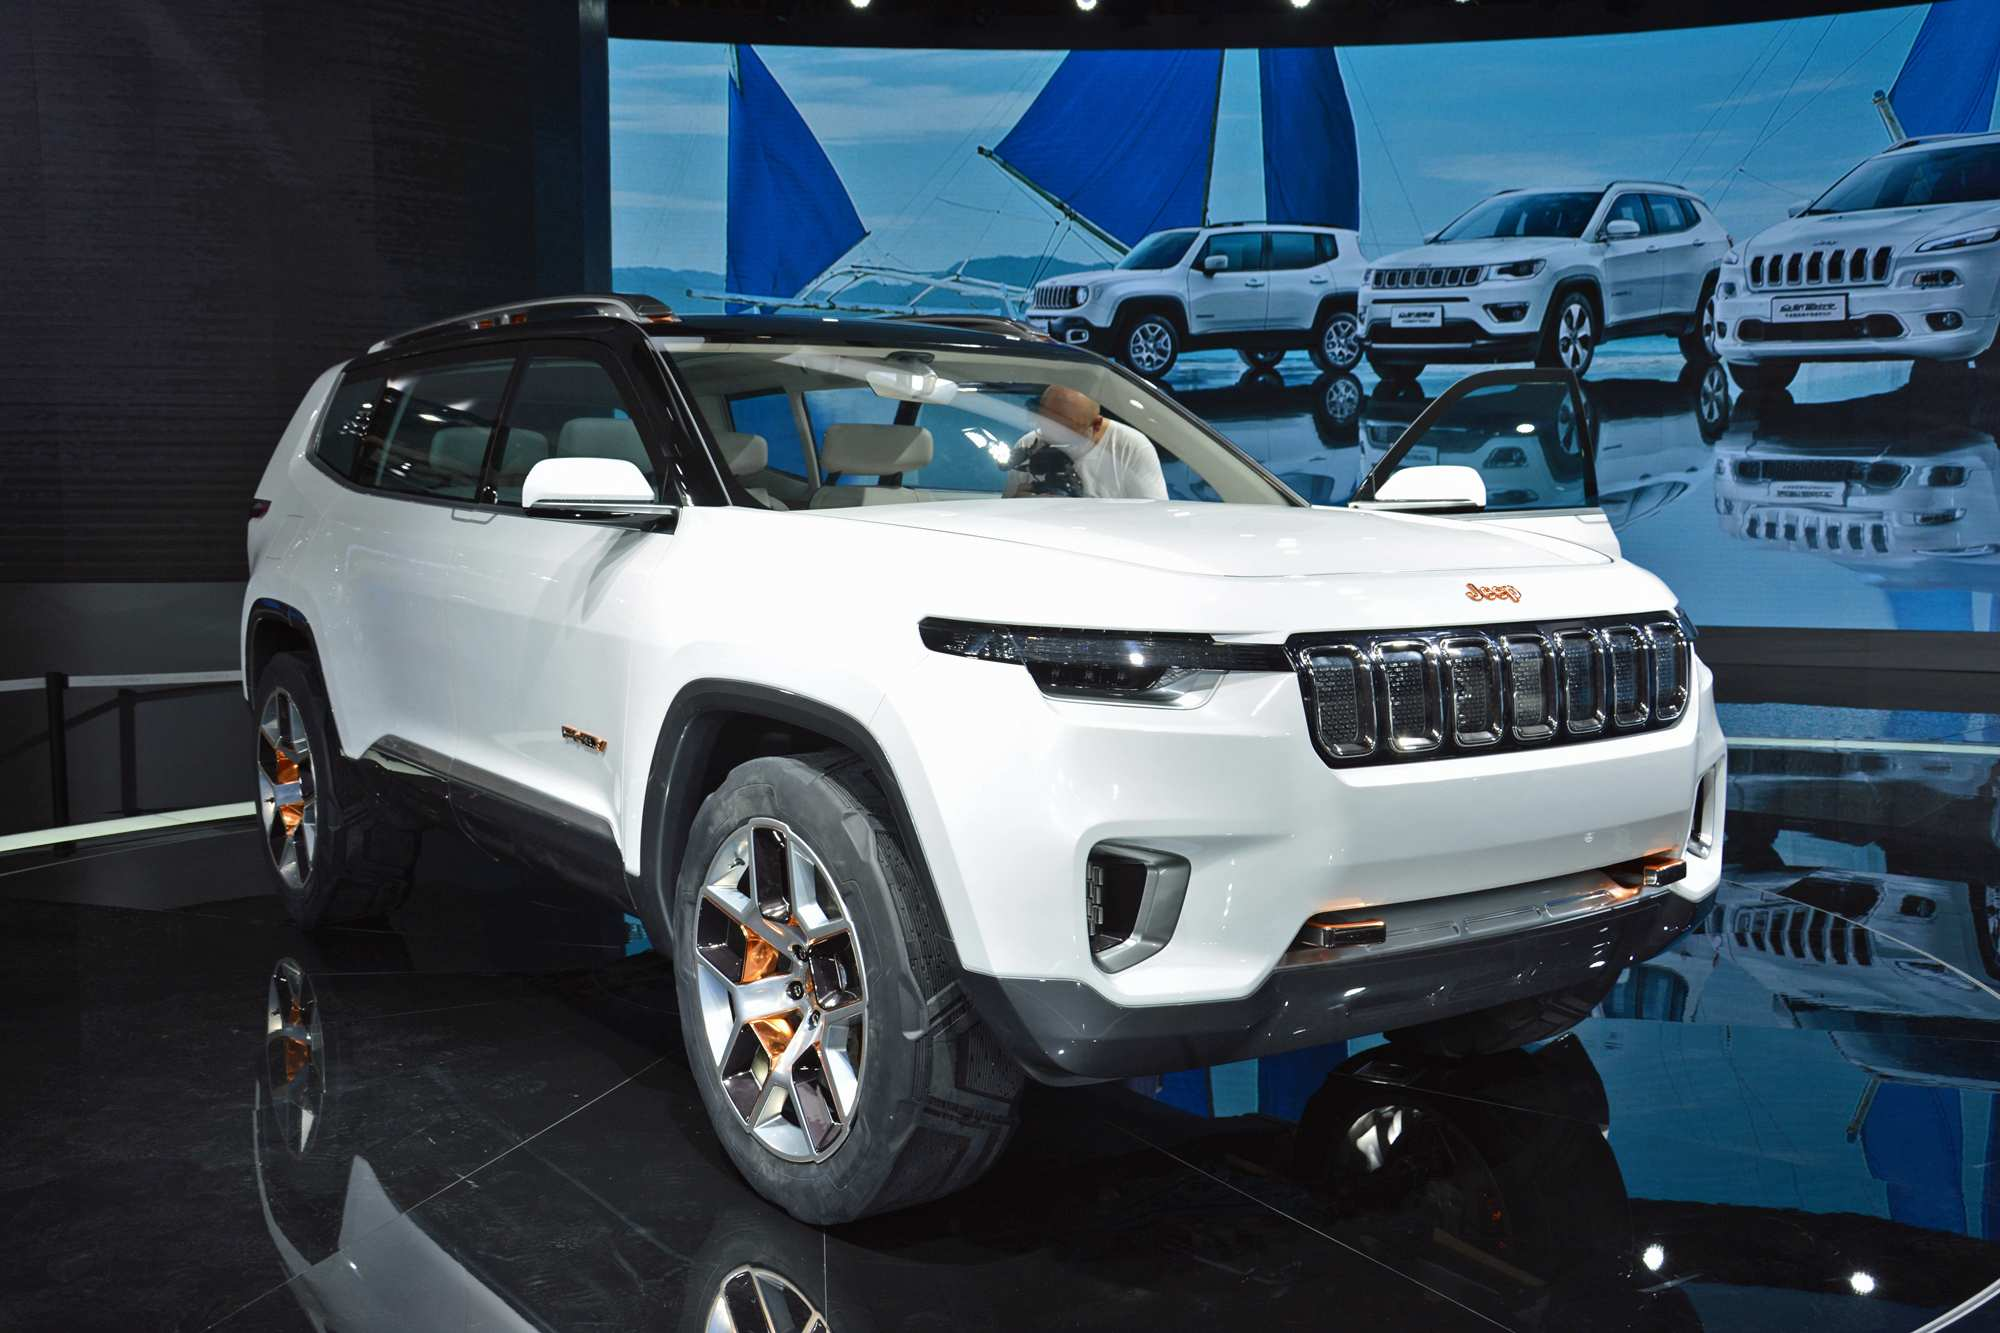 75 New Jeep Grand Cherokee 2020 Redesign Exterior with Jeep Grand Cherokee 2020 Redesign